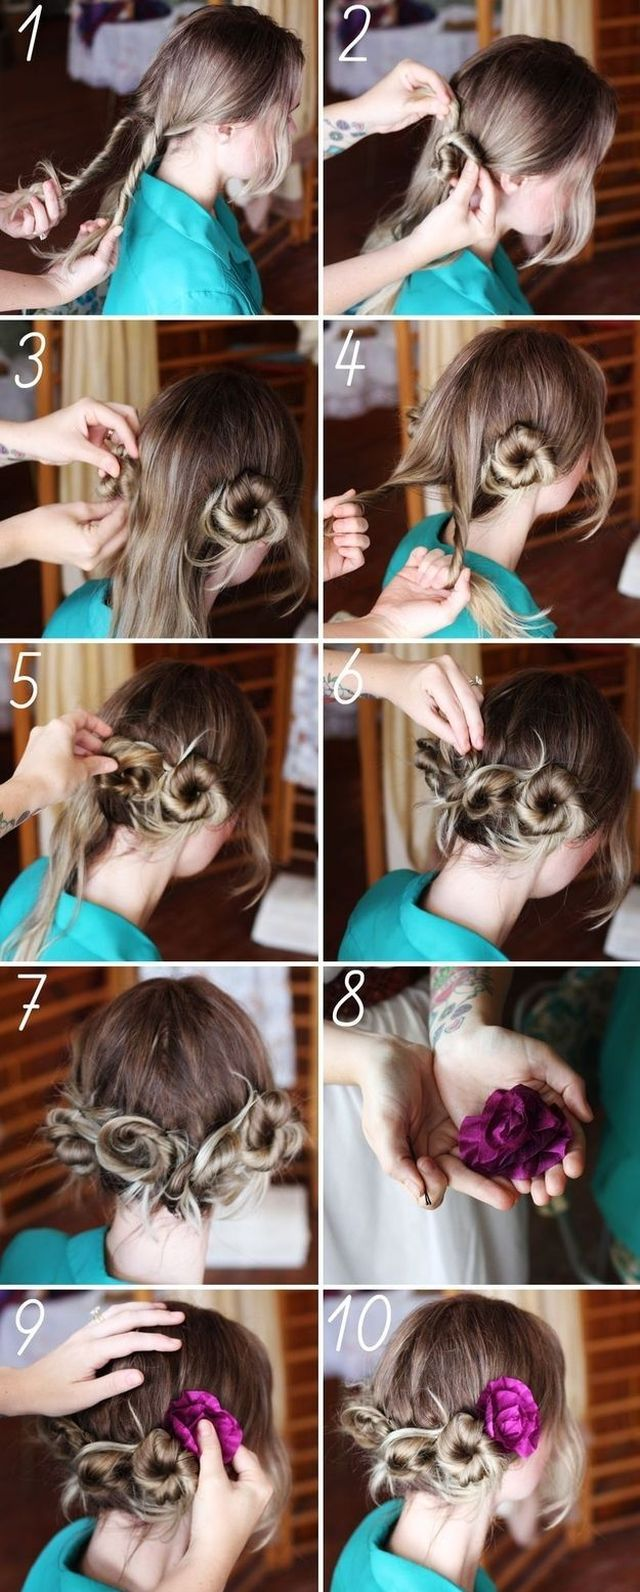 how-to-guide-to-hairstyles-27-pics_20